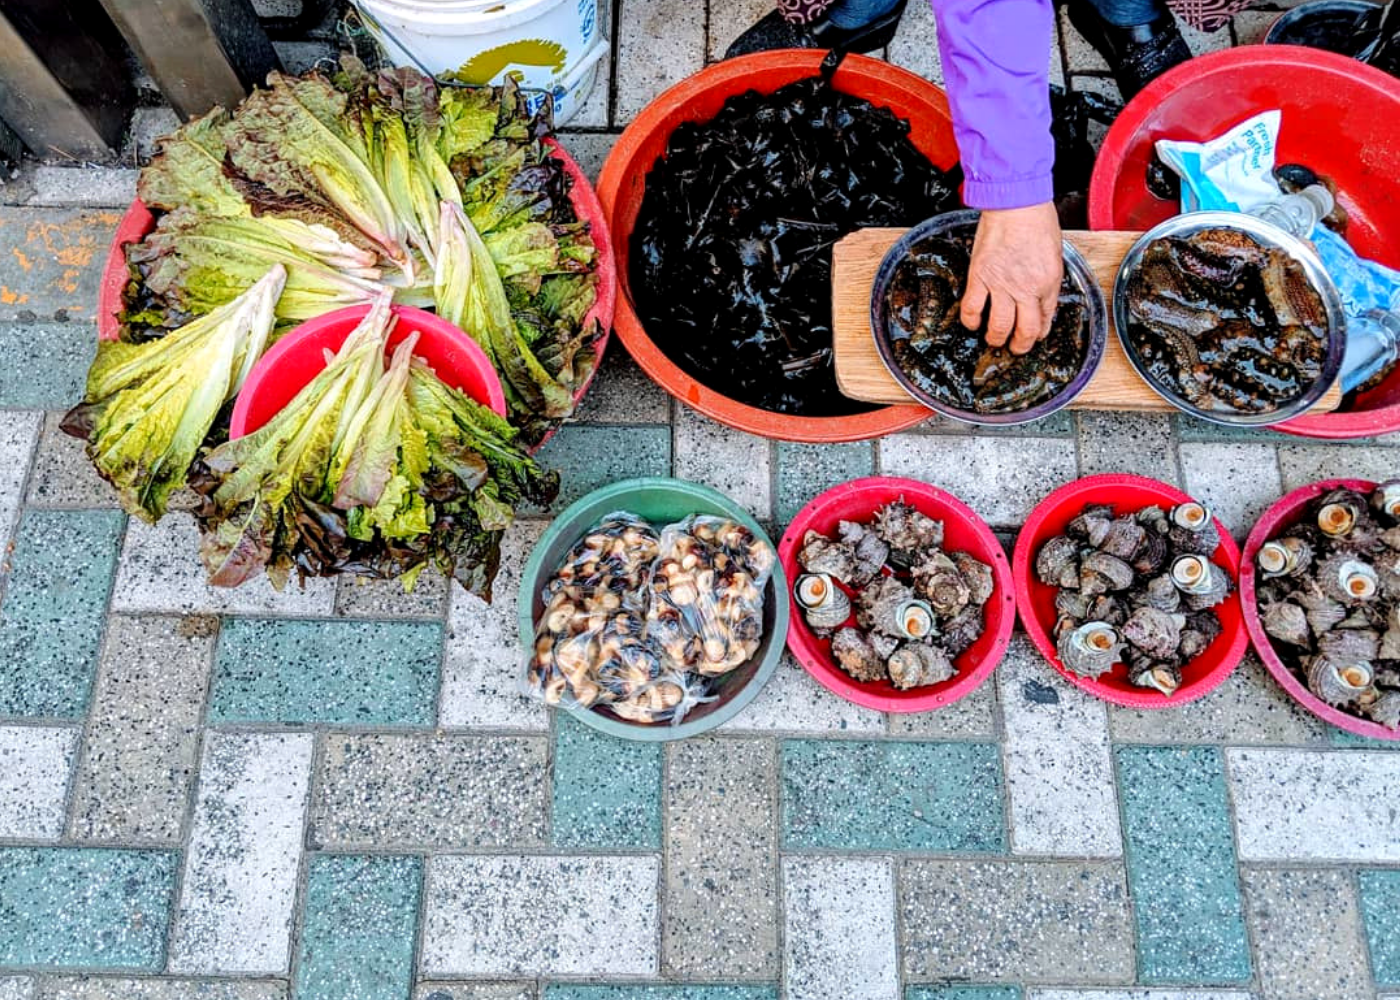 A local granny selling sea cucumbers and shellfish by the street.